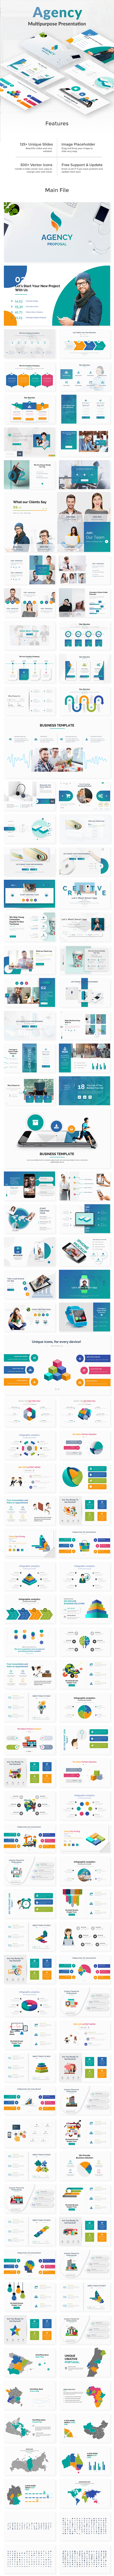 Agency Proposal Multipurpose Keynote Template - Business Keynote Templates